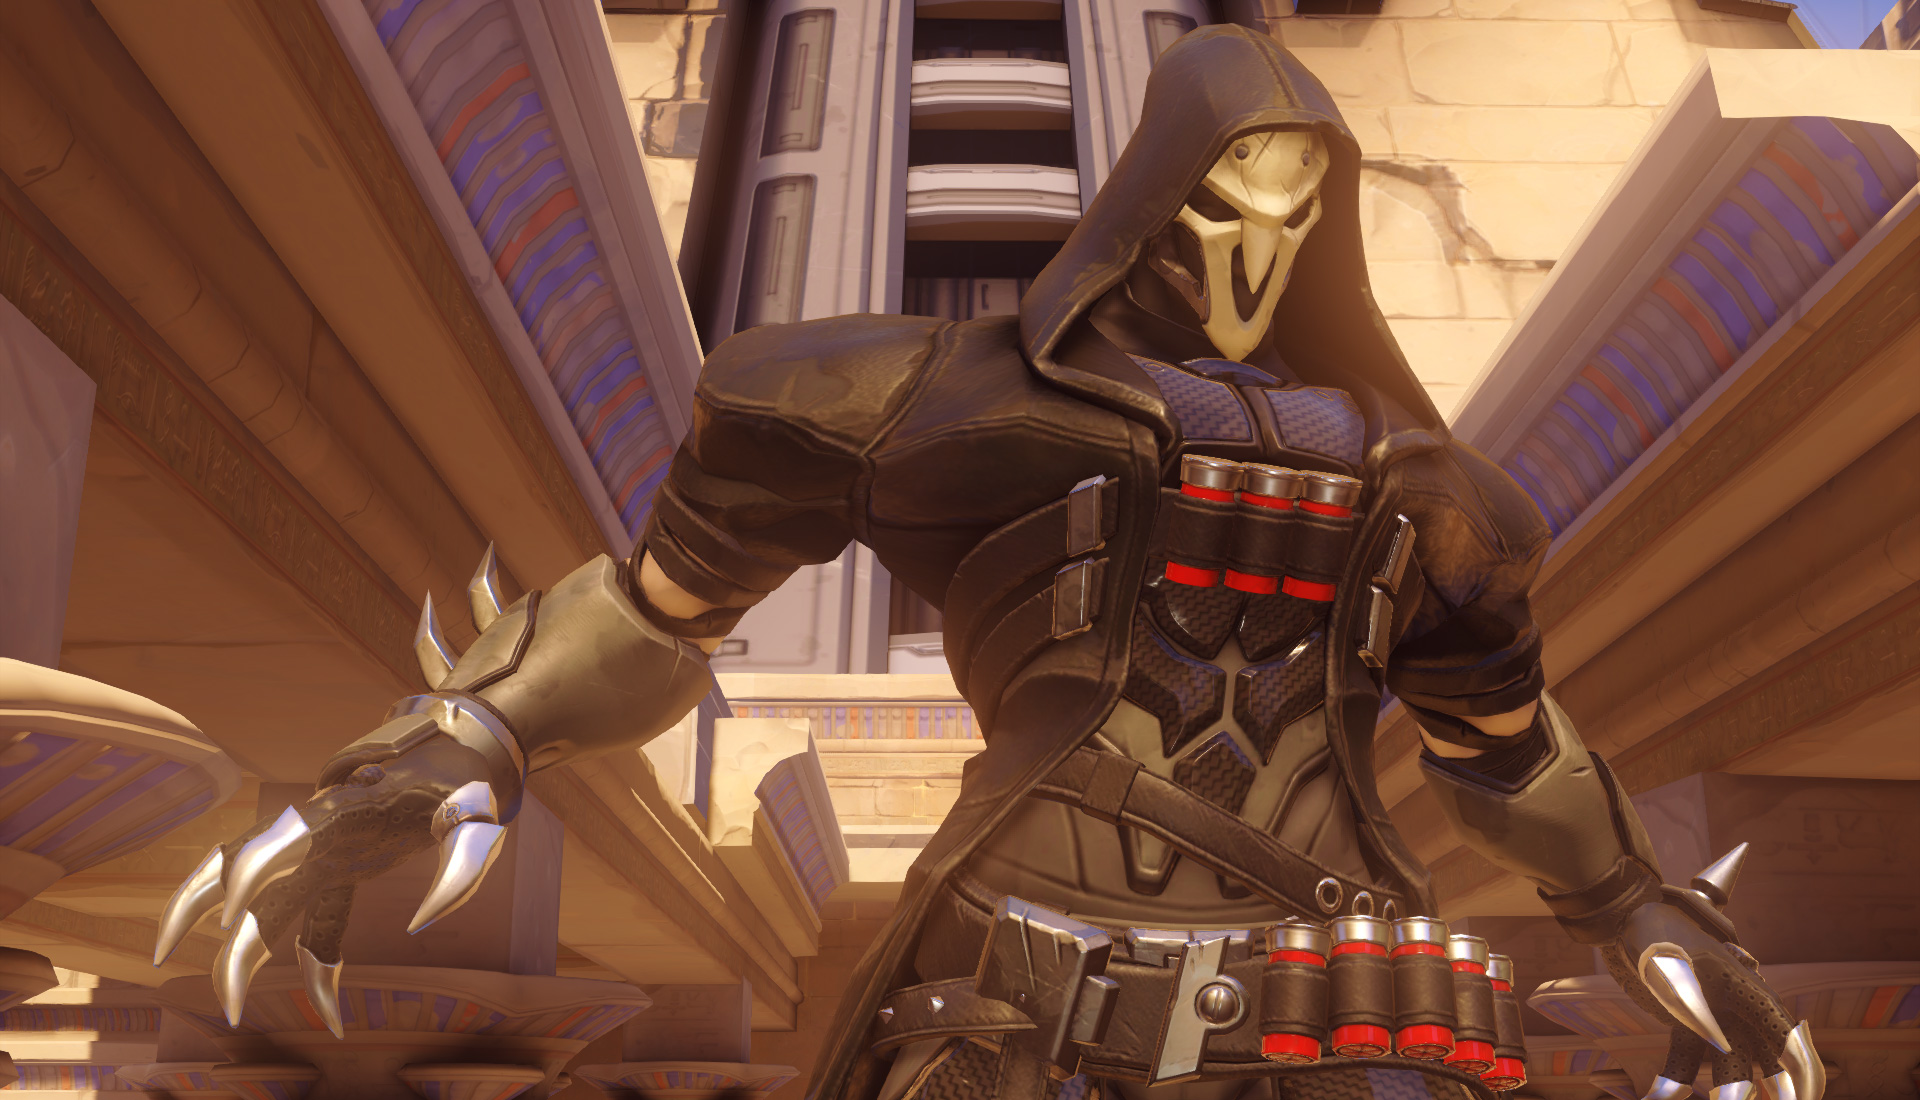 Blizzard: Overwatch is 'feasible' on Switch, StarCraft II, not so much screenshot